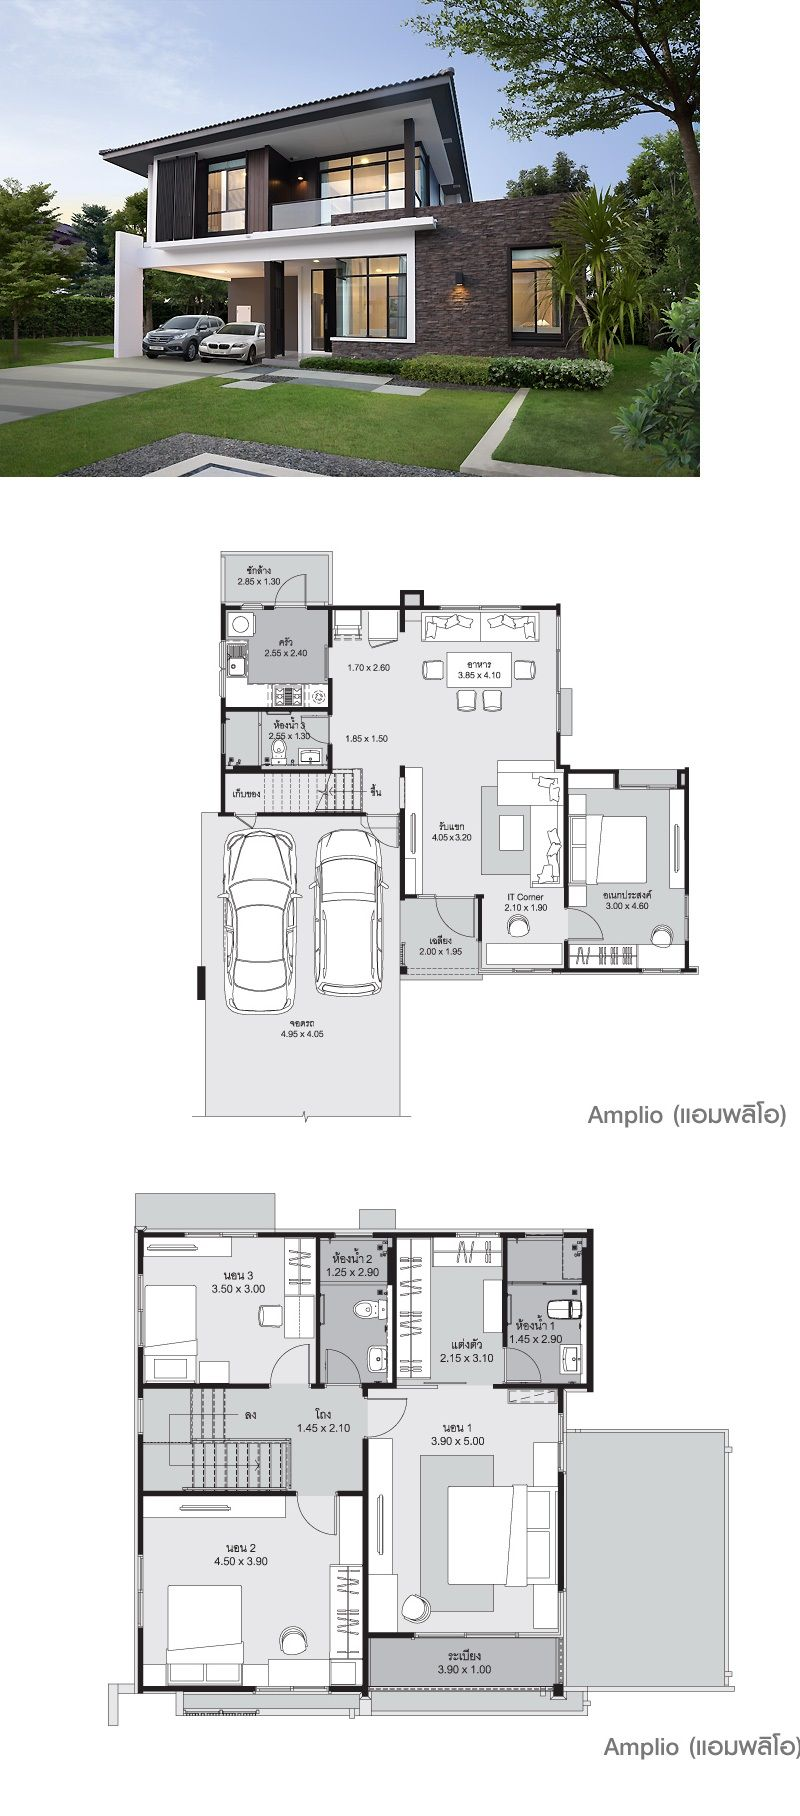 House floor plans modern dream design also pin by tho tran on ngoai that rh pinterest